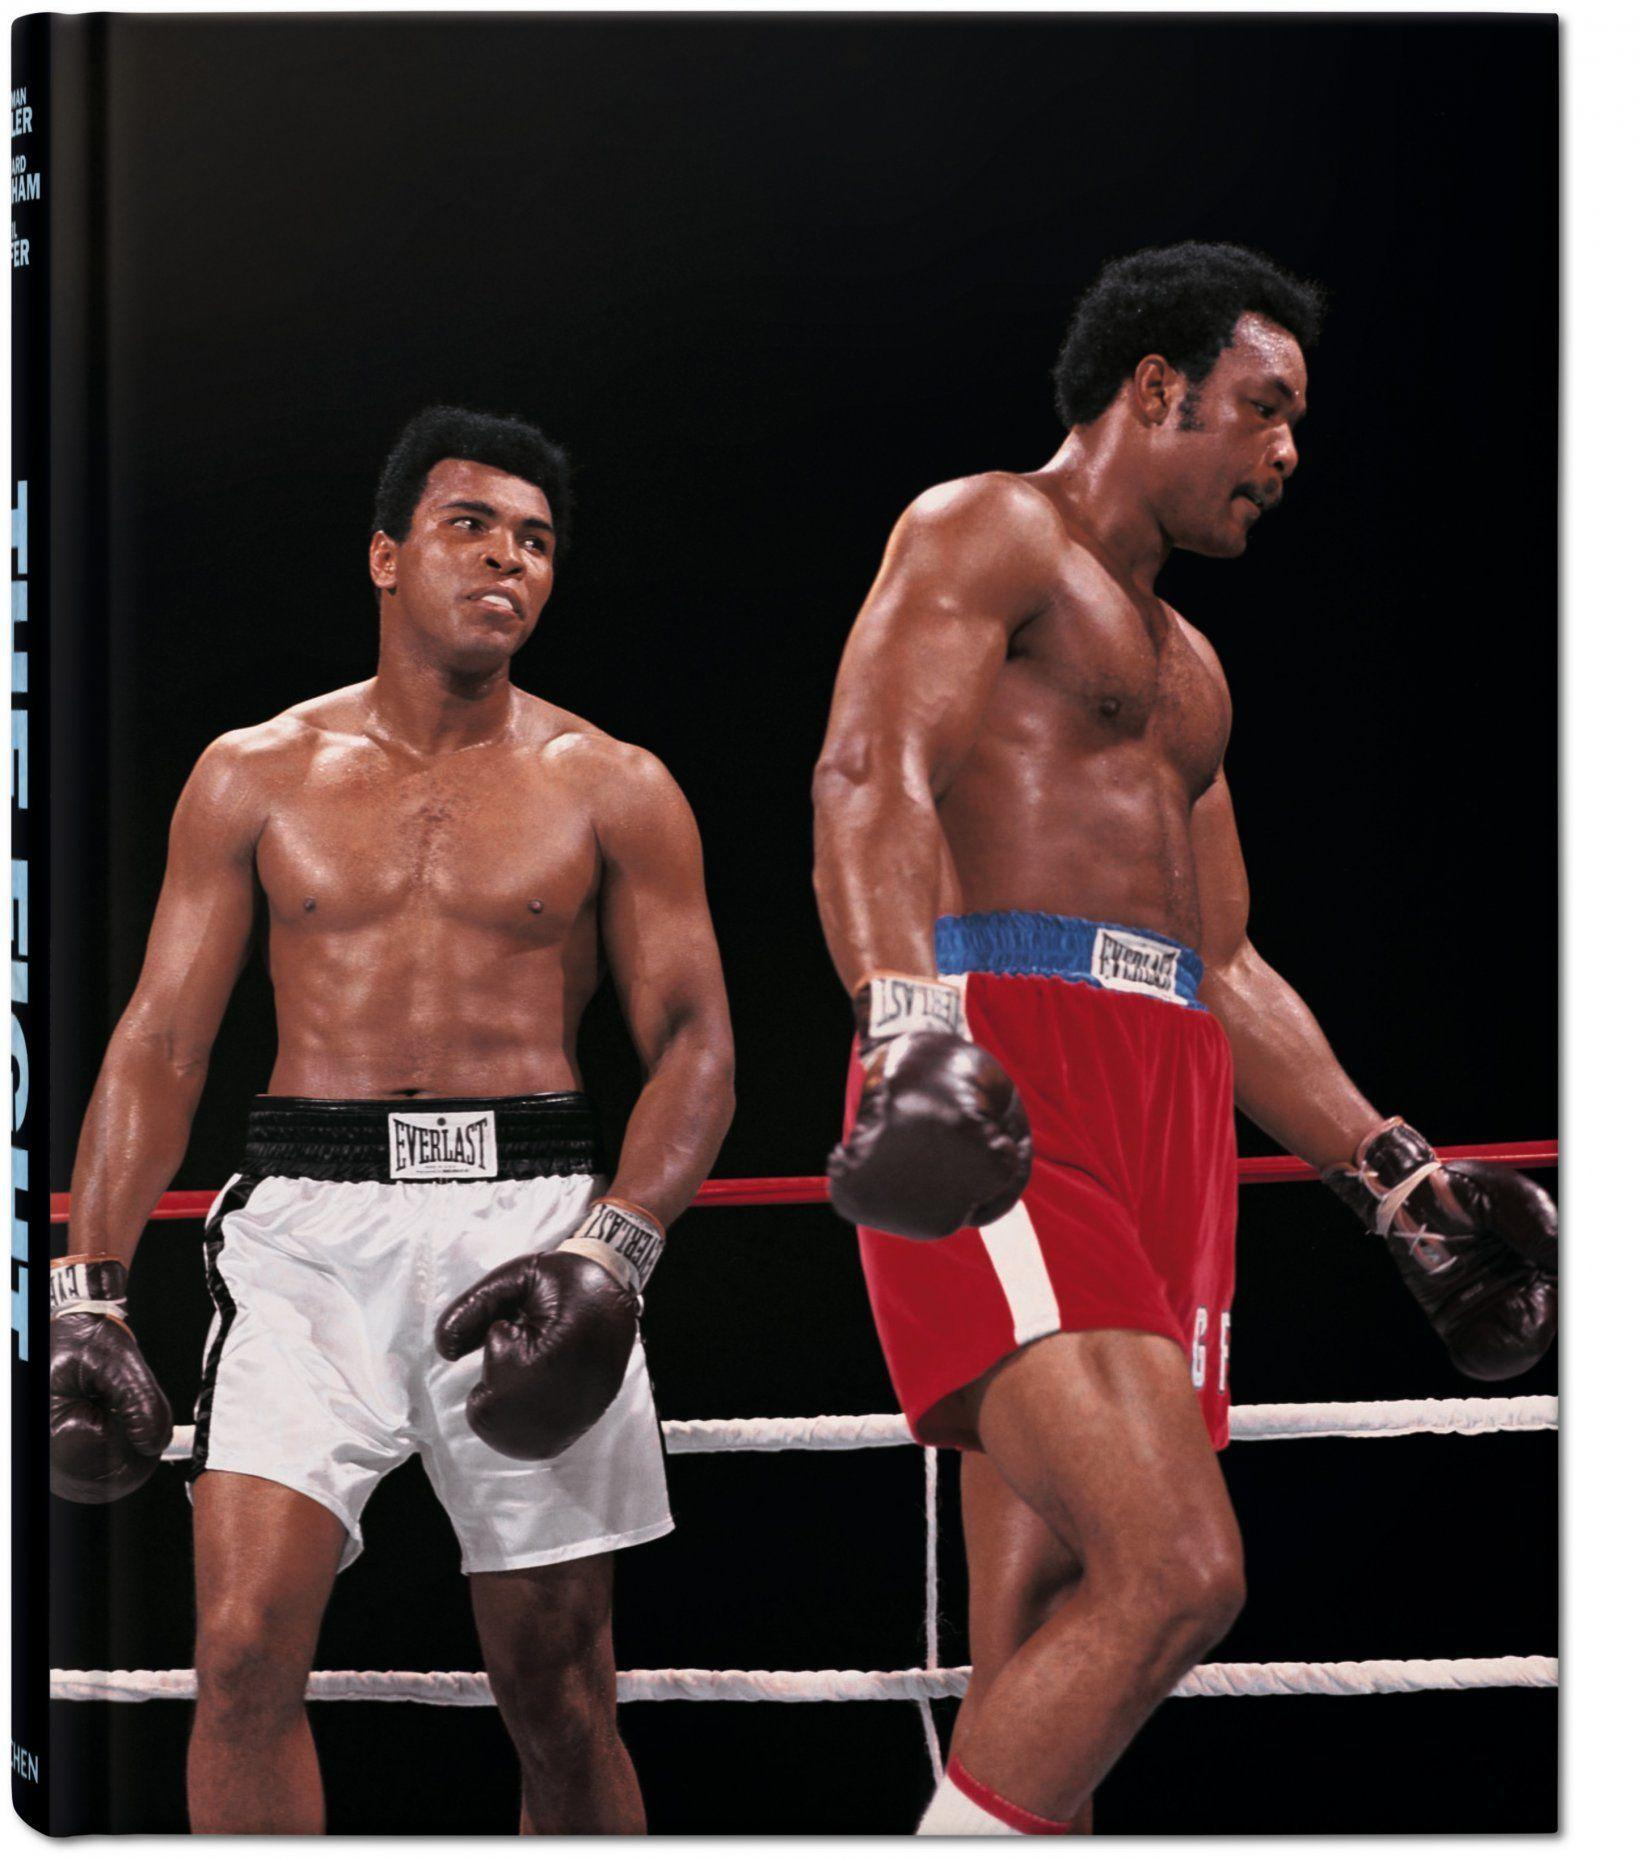 Norman Mailer, Neil Leifer, The Fight Taschen Collectors Edition